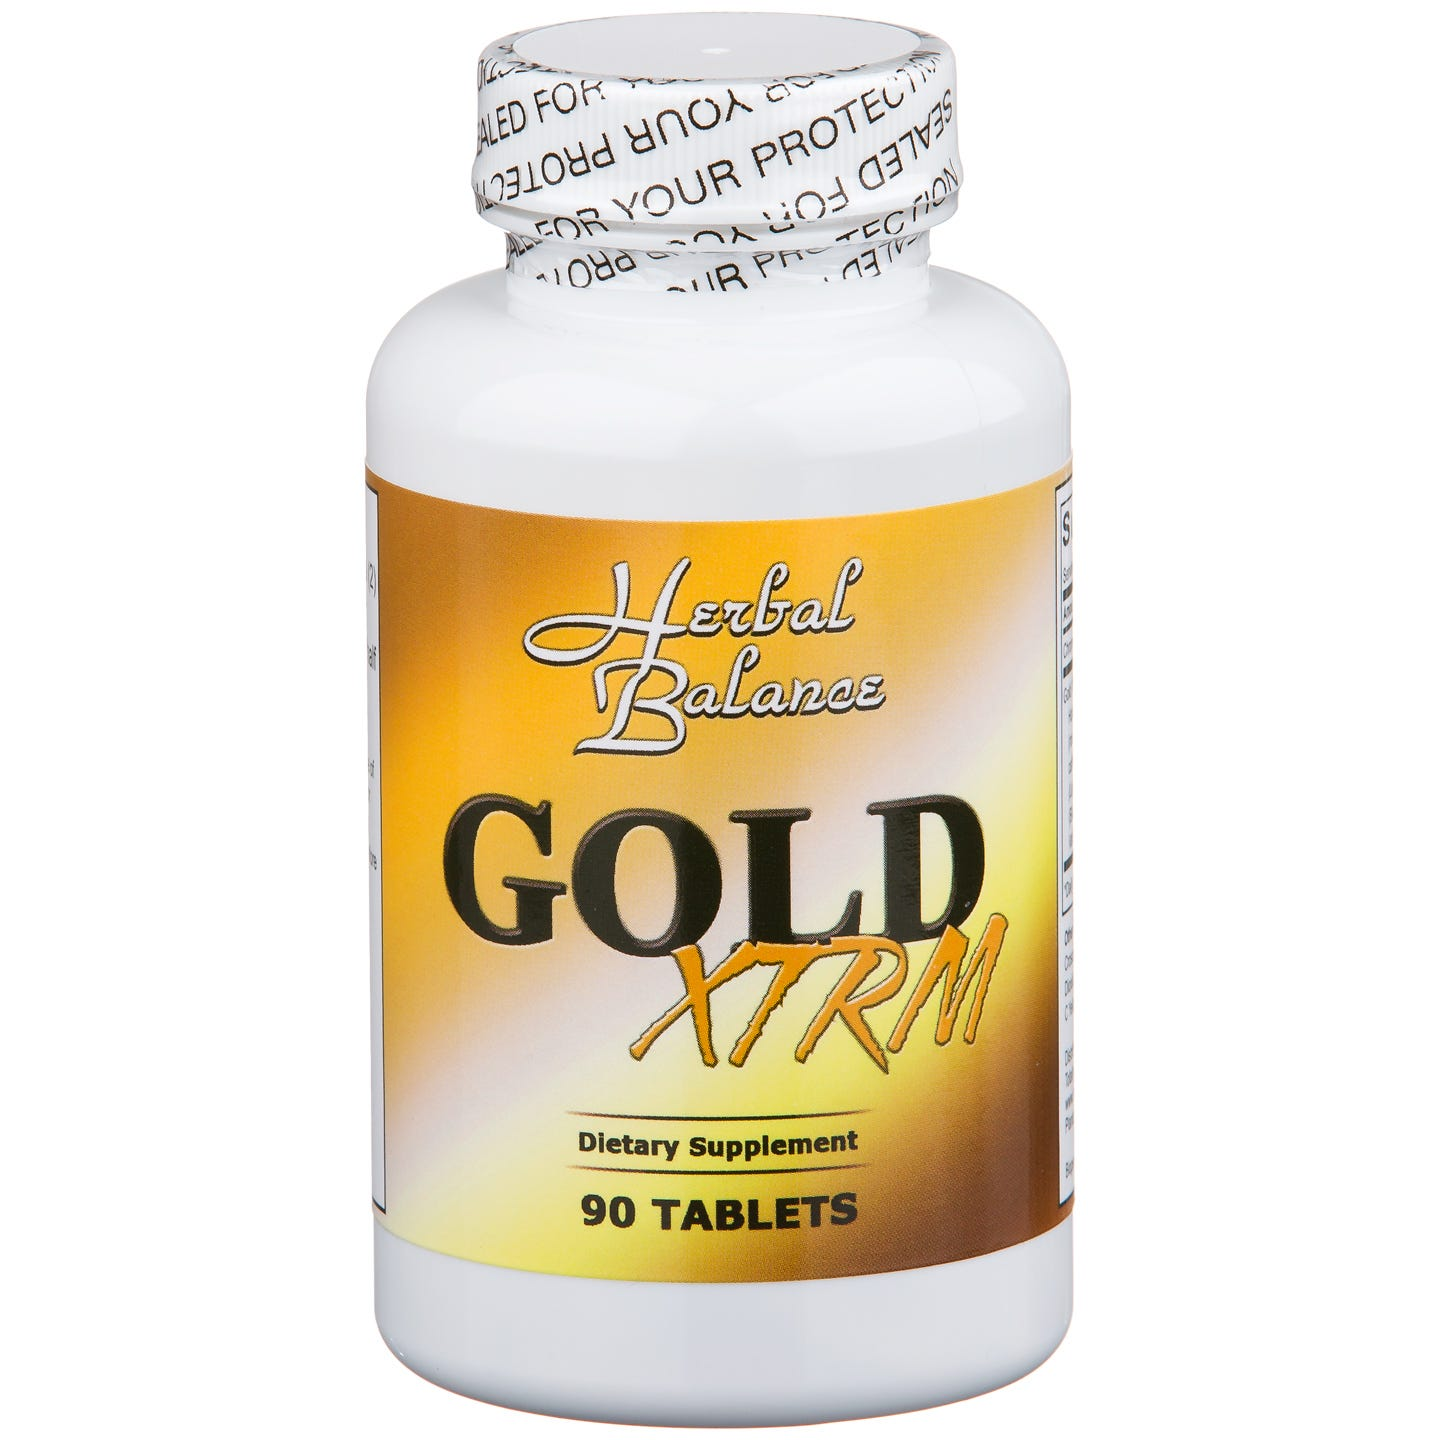 Herbal Balance Gold XTRM (90 ct) - Totally Slim - Rapid Diet Weight Loss Products Shop